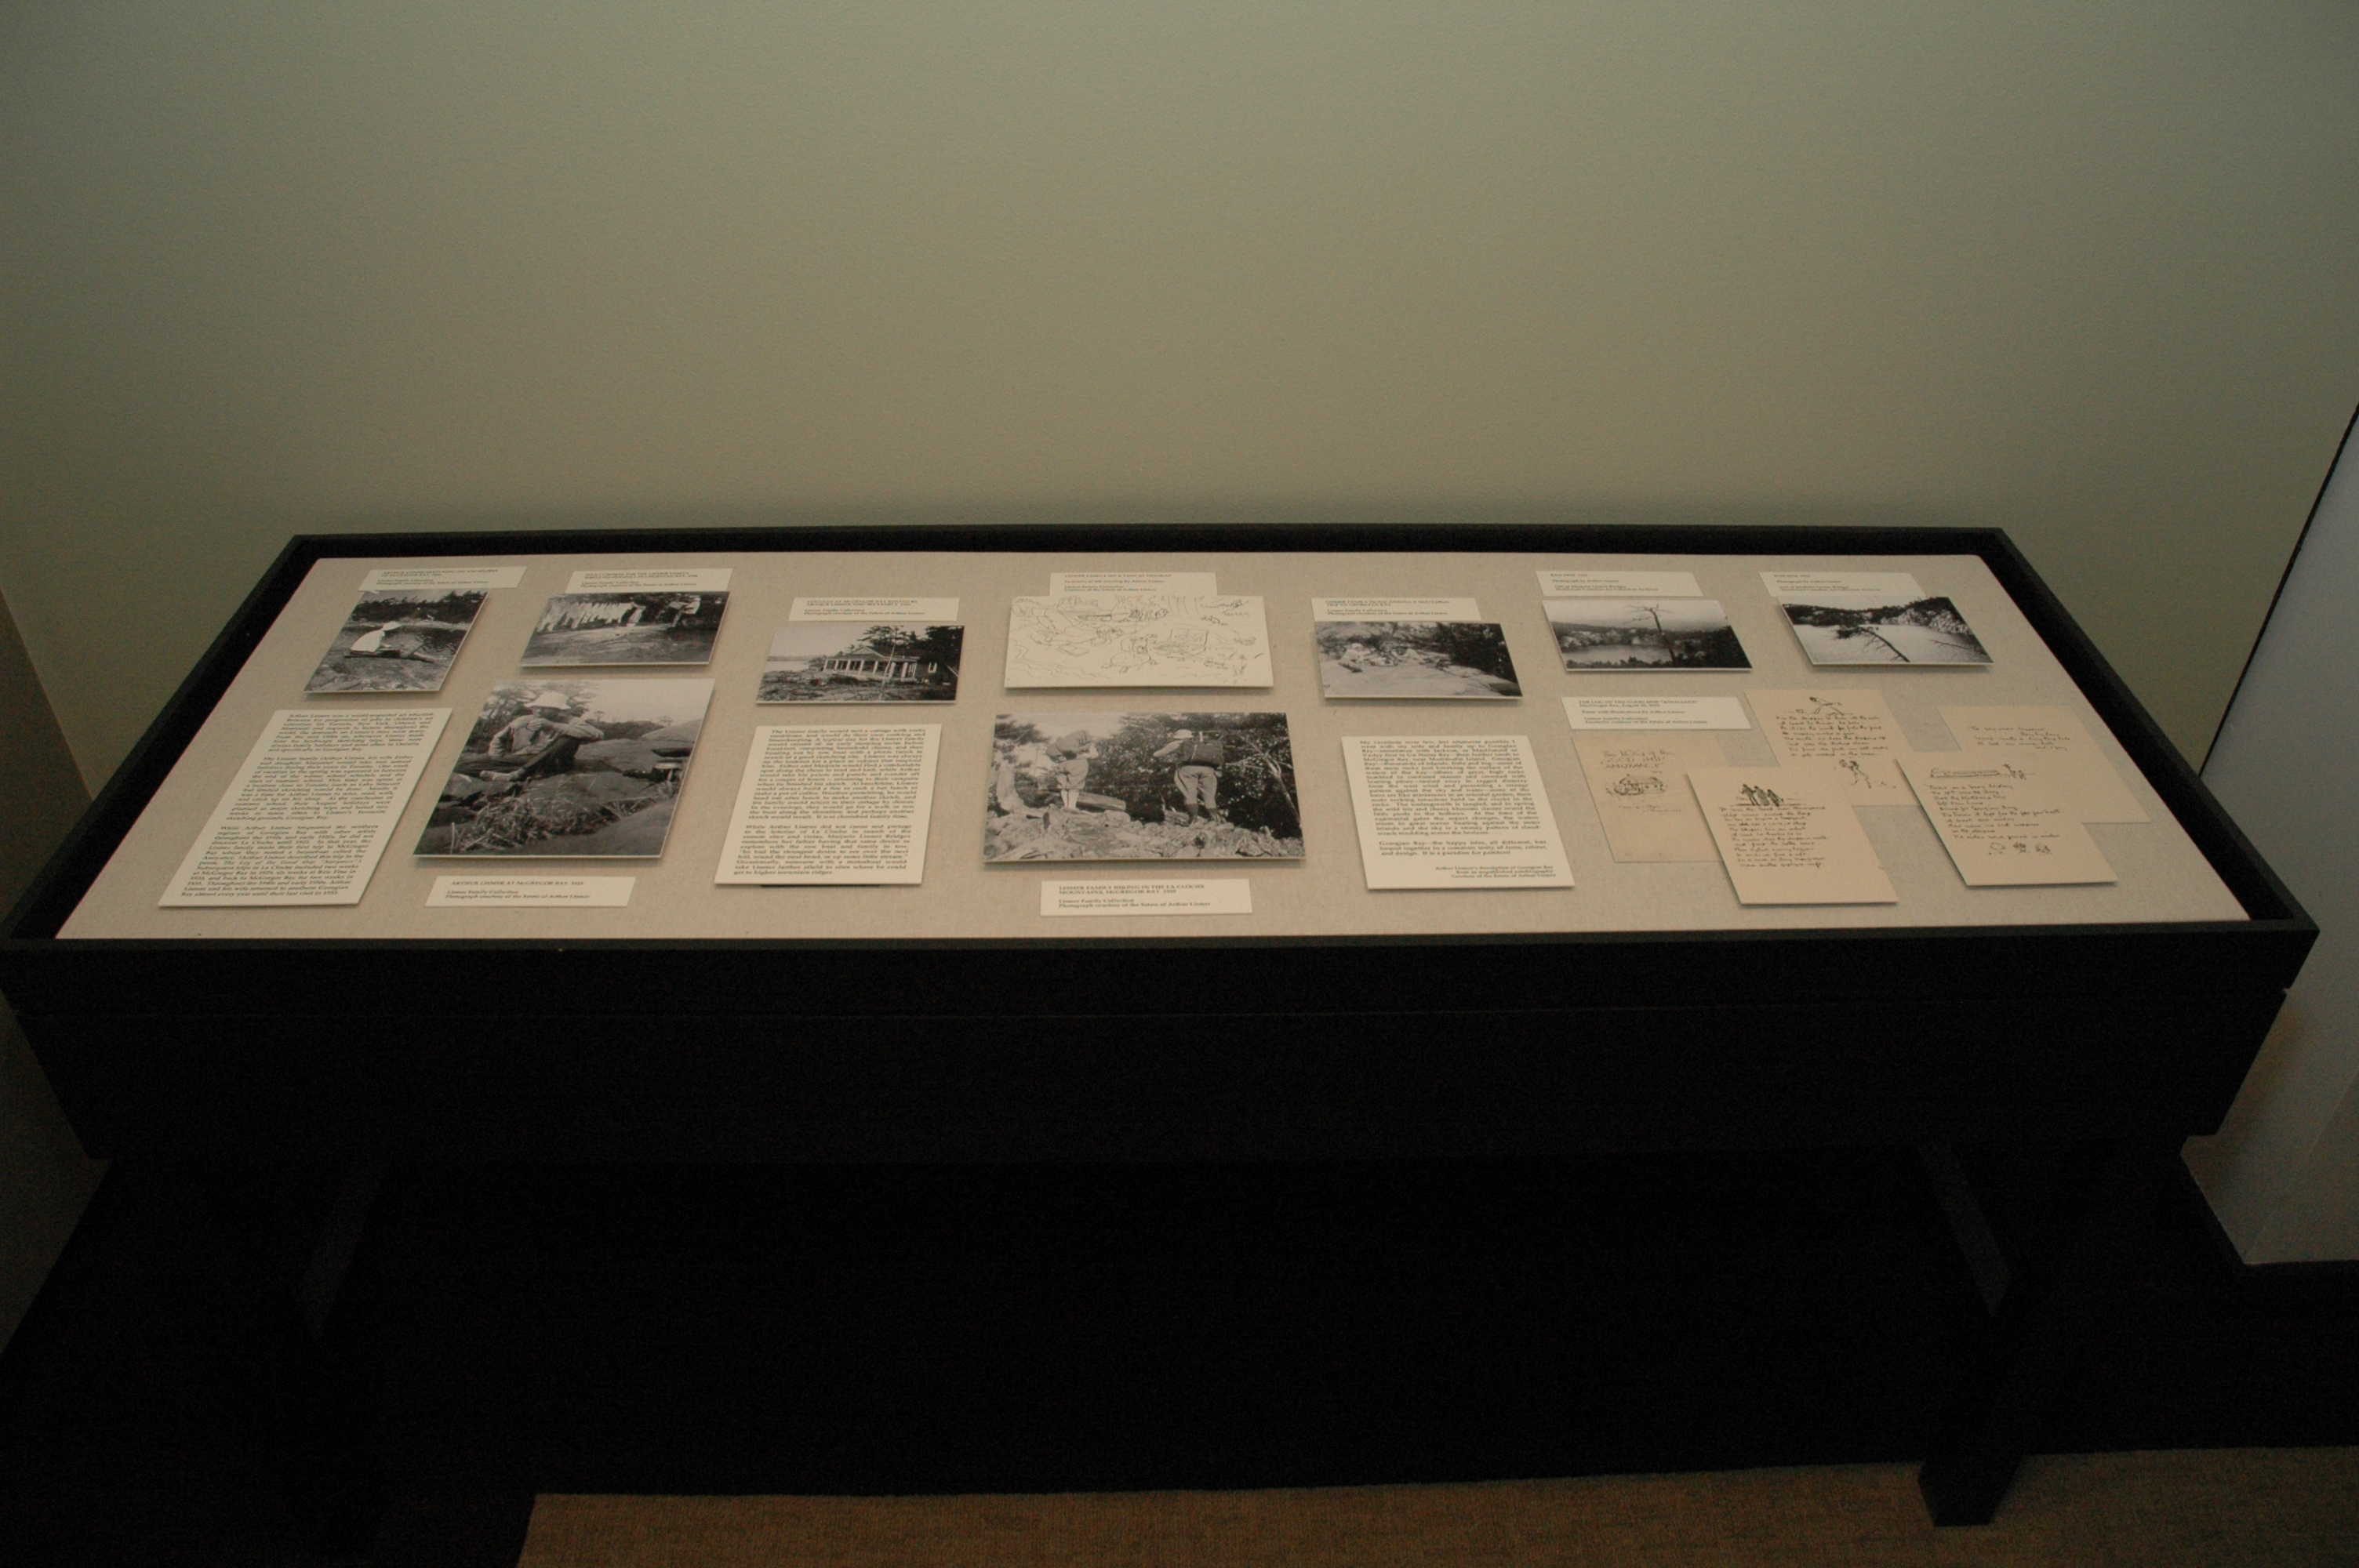 black and white photograph of a display case containing printed material